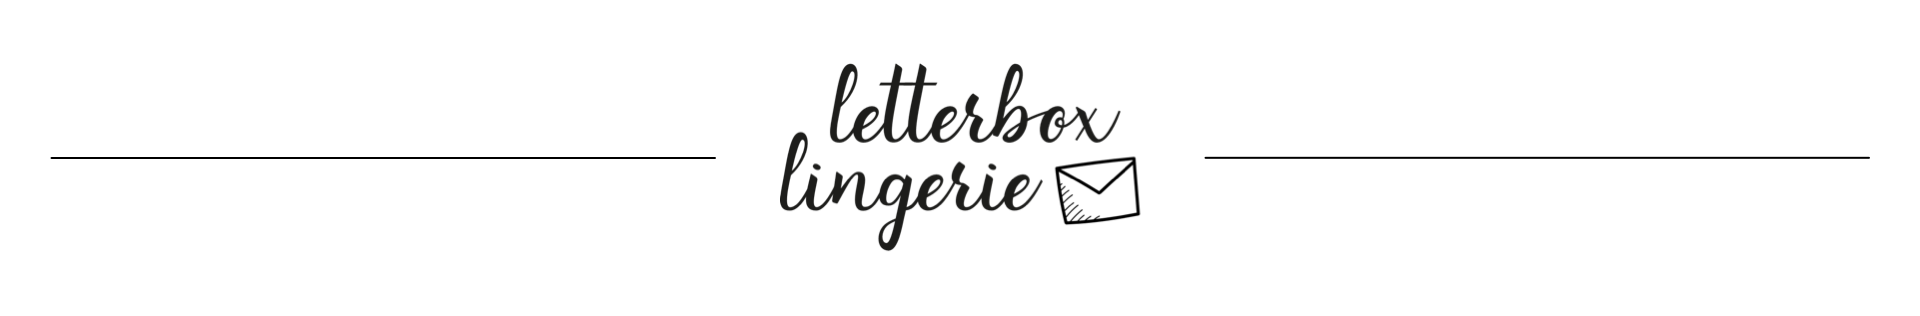 Letterbox.png